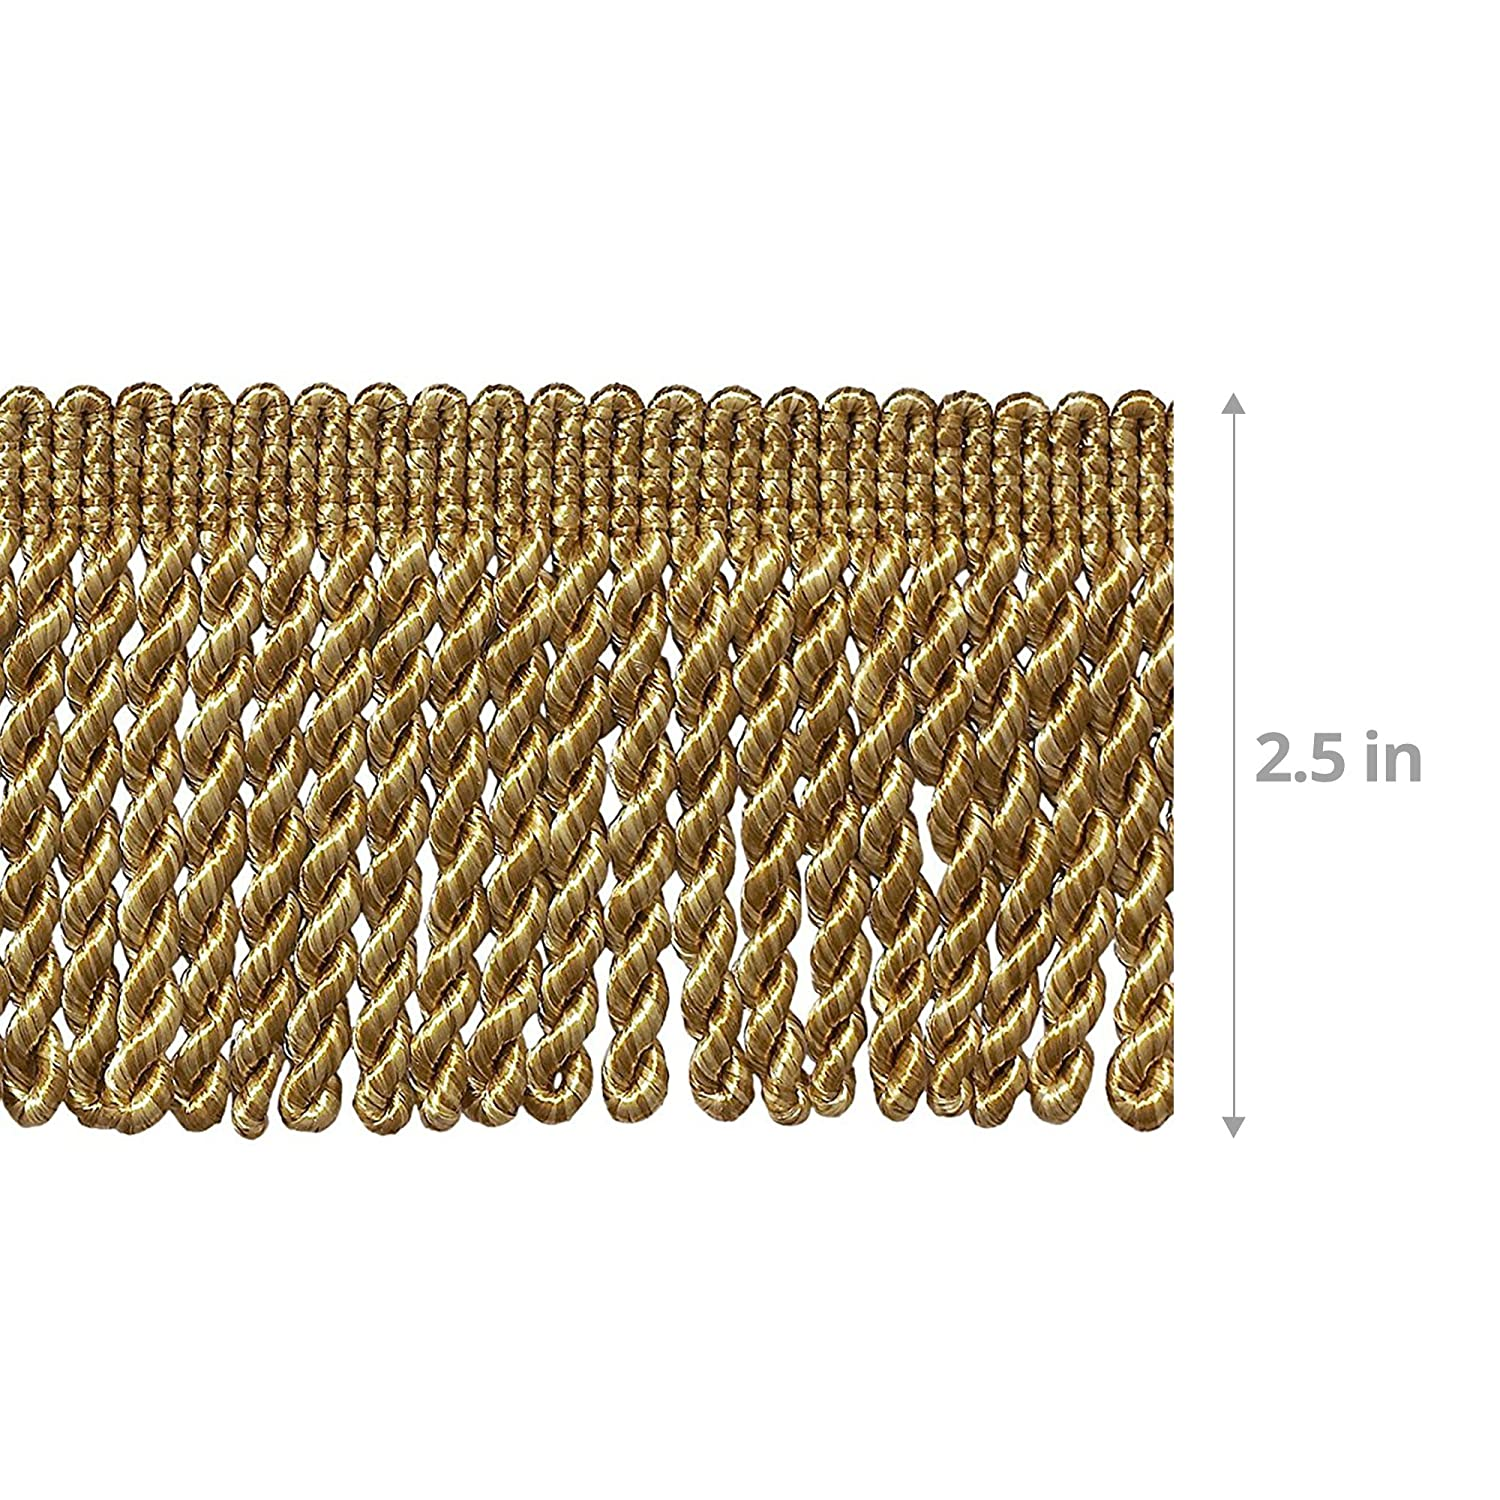 10 Yard Value Pack of Two Tone Gold 2.5 Inch Bullion Fringe Trim 30 Ft  9.5 Meters Style# EF25 Color 8534